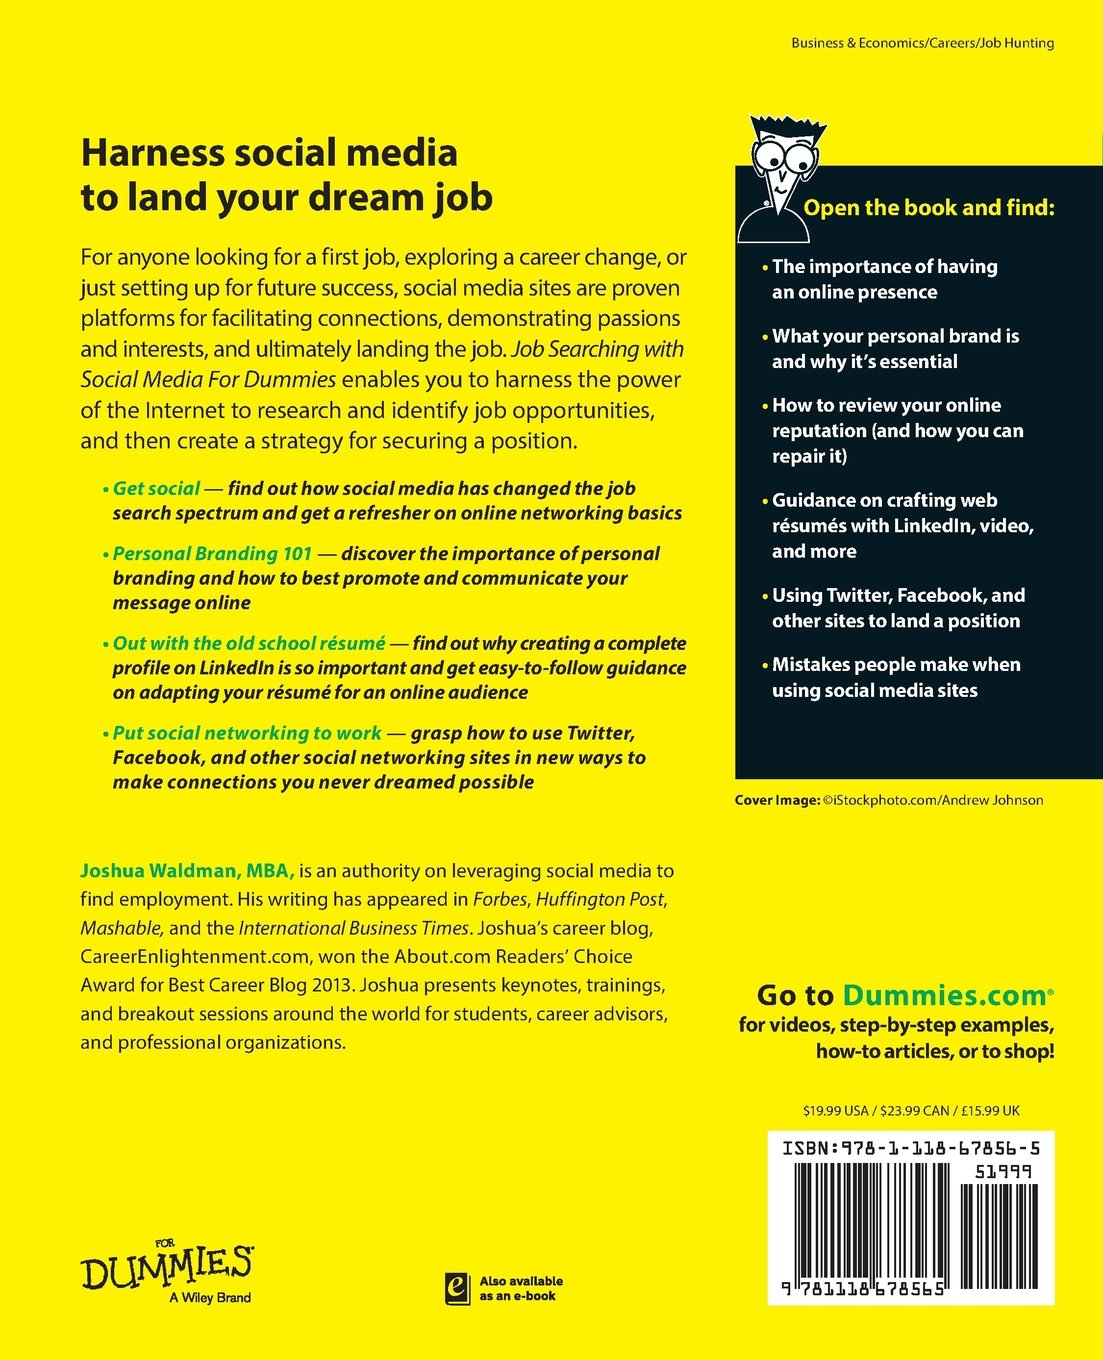 job searching social media for dummies joshua waldman job searching social media for dummies joshua waldman 9781118678565 com books